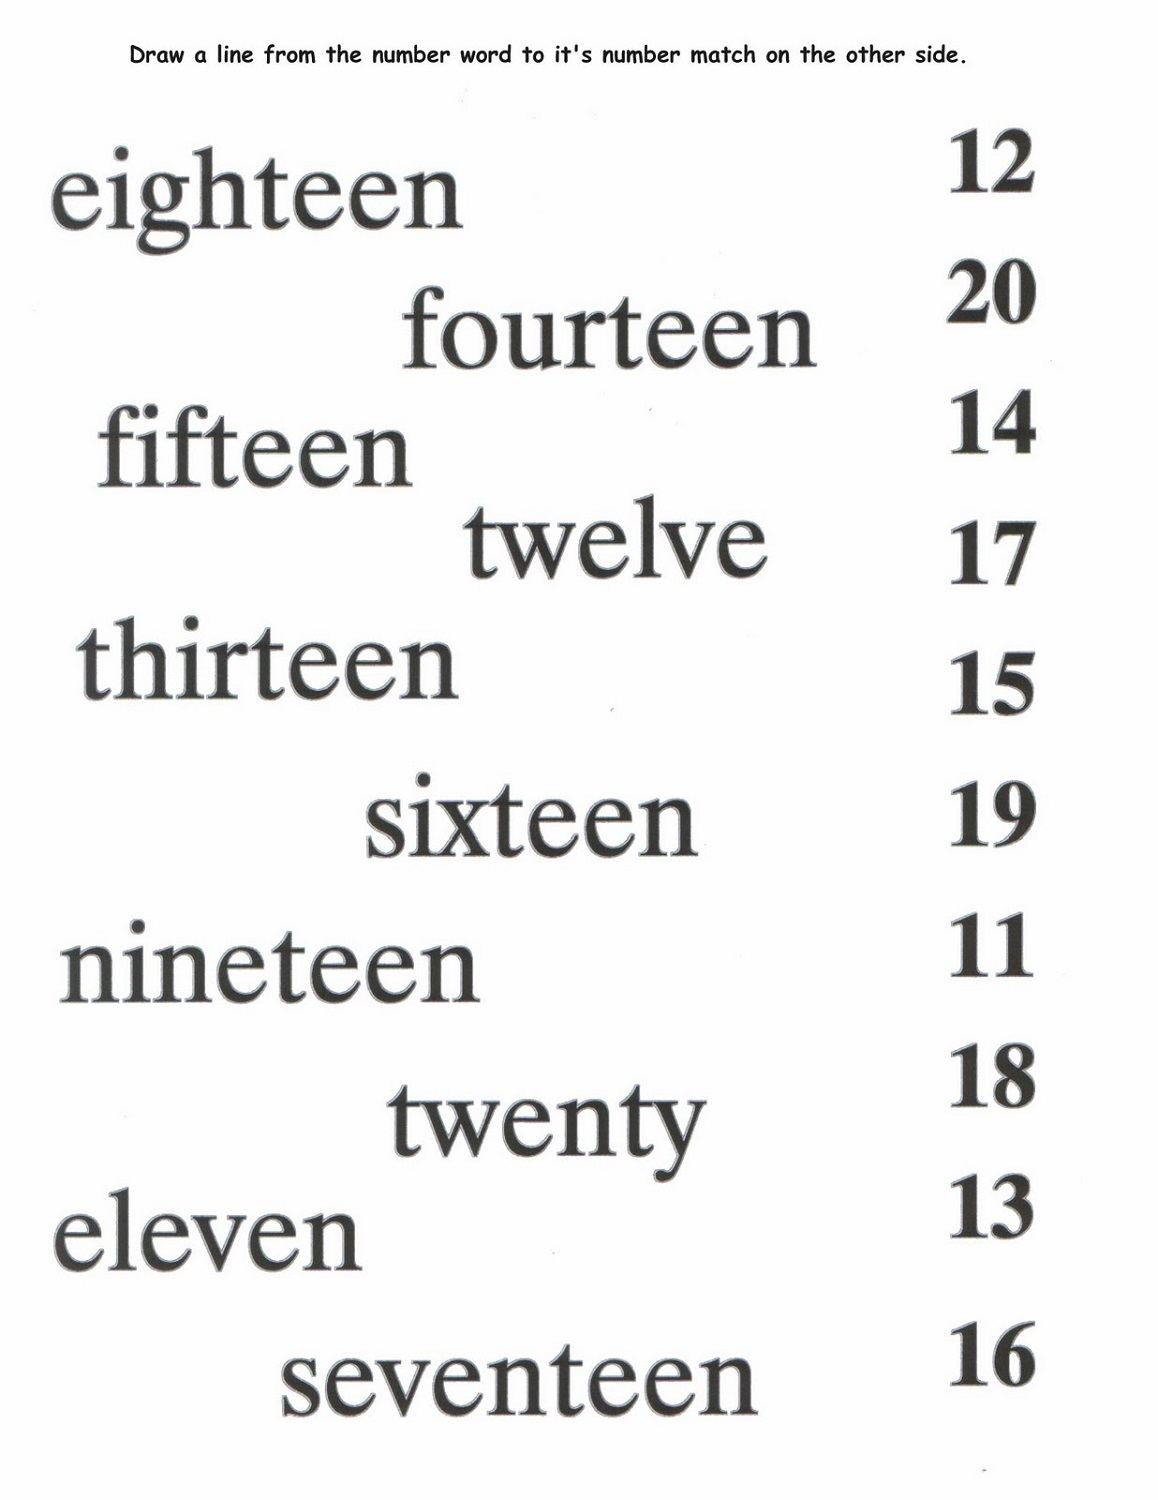 photograph relating to Numbers 1-20 Printable named Quantity 1-20 Worksheets Match Shelter